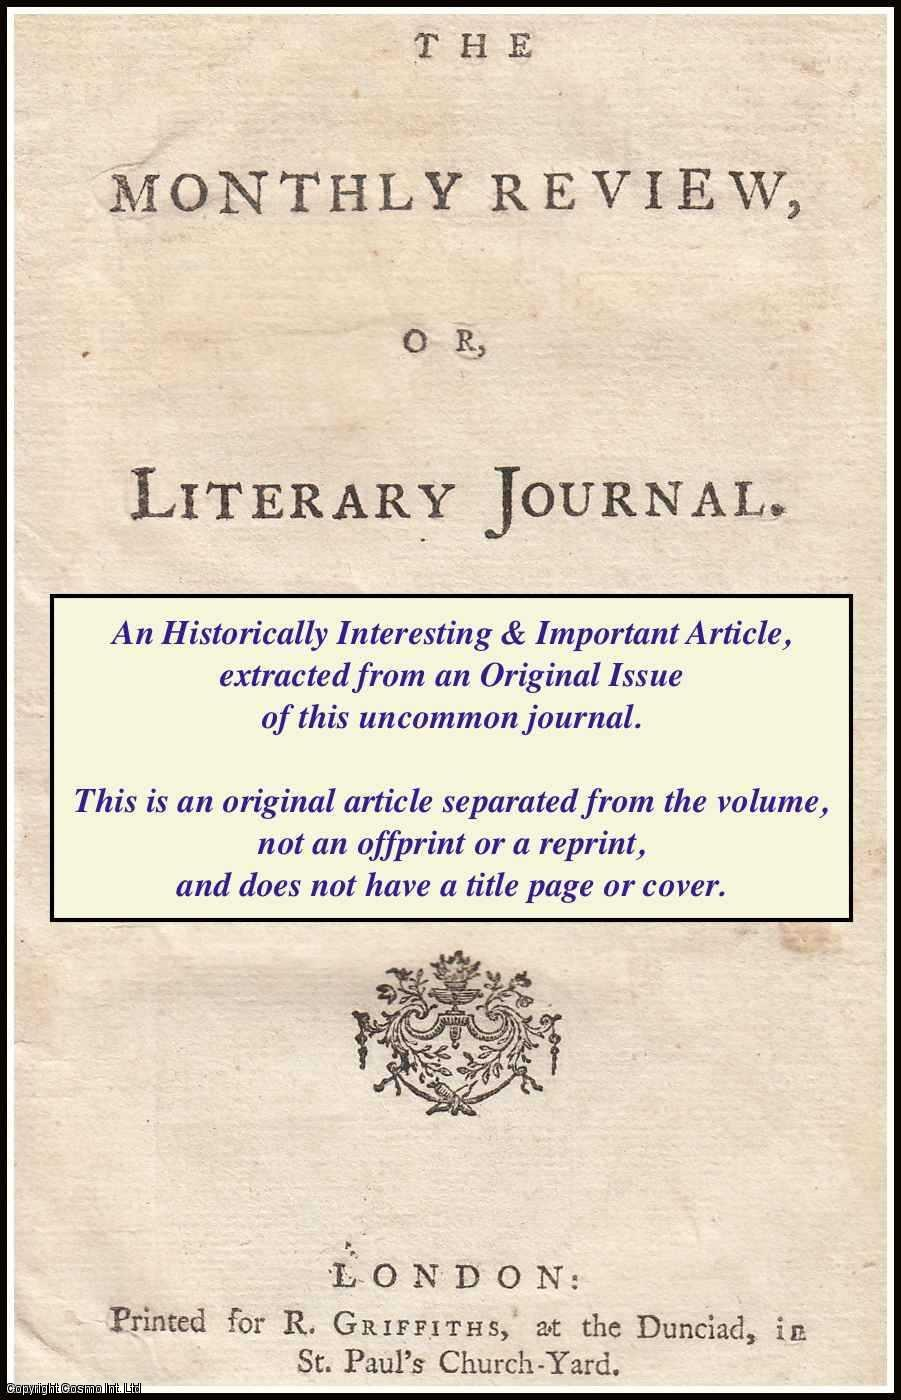 --- - An Essay concerning The Morality of Man, or The Philosophy of Nature. A rare original article from the Monthly Review, 1770.